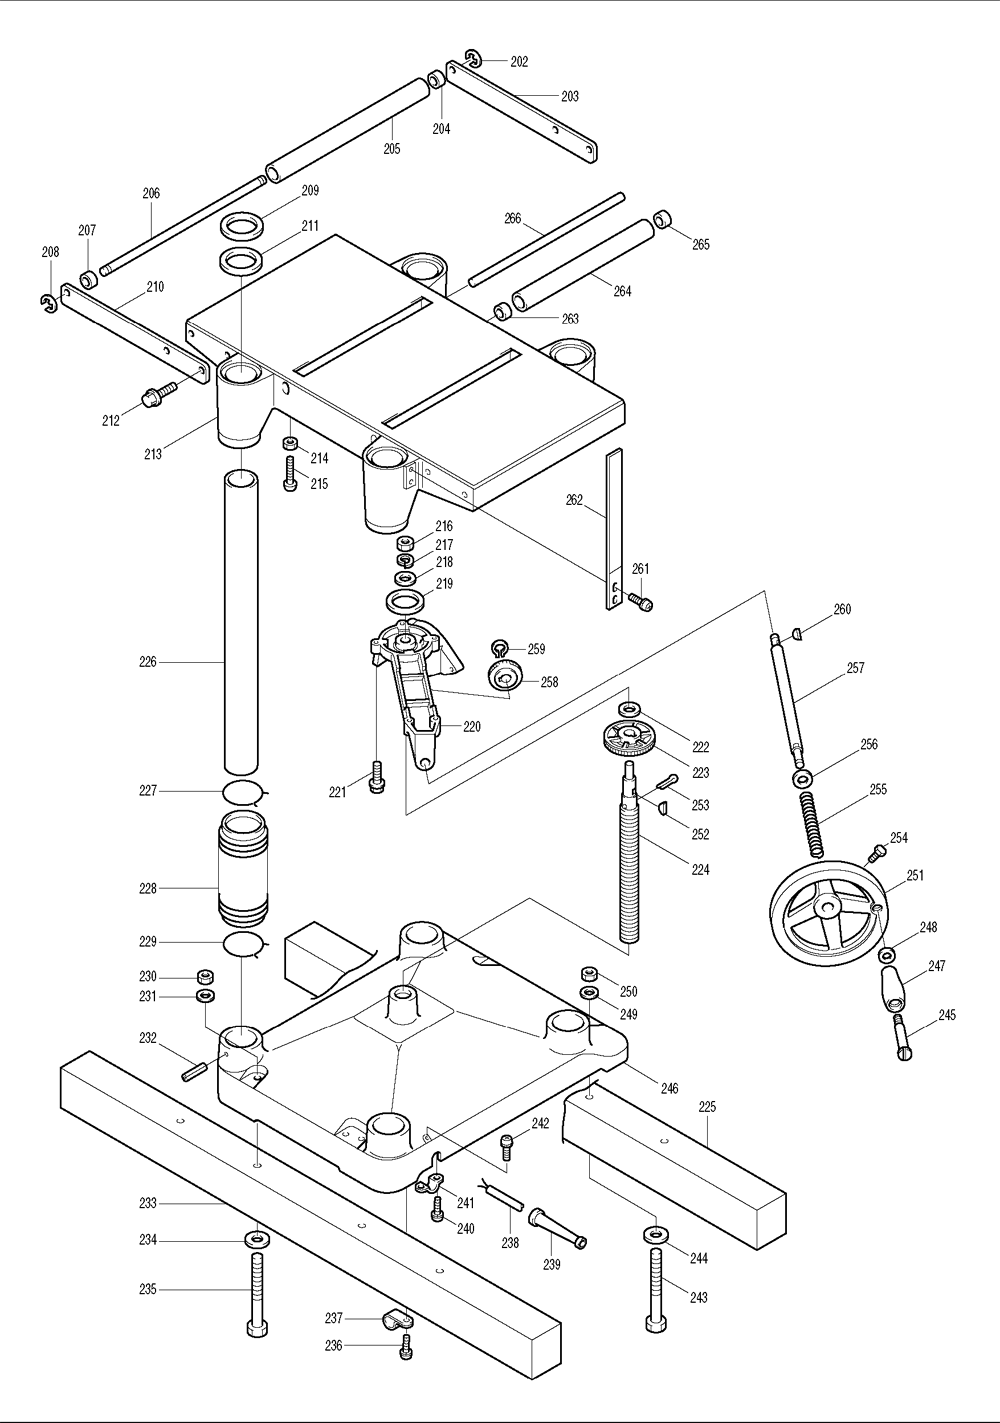 related with electrical wiring diagram makita 6302